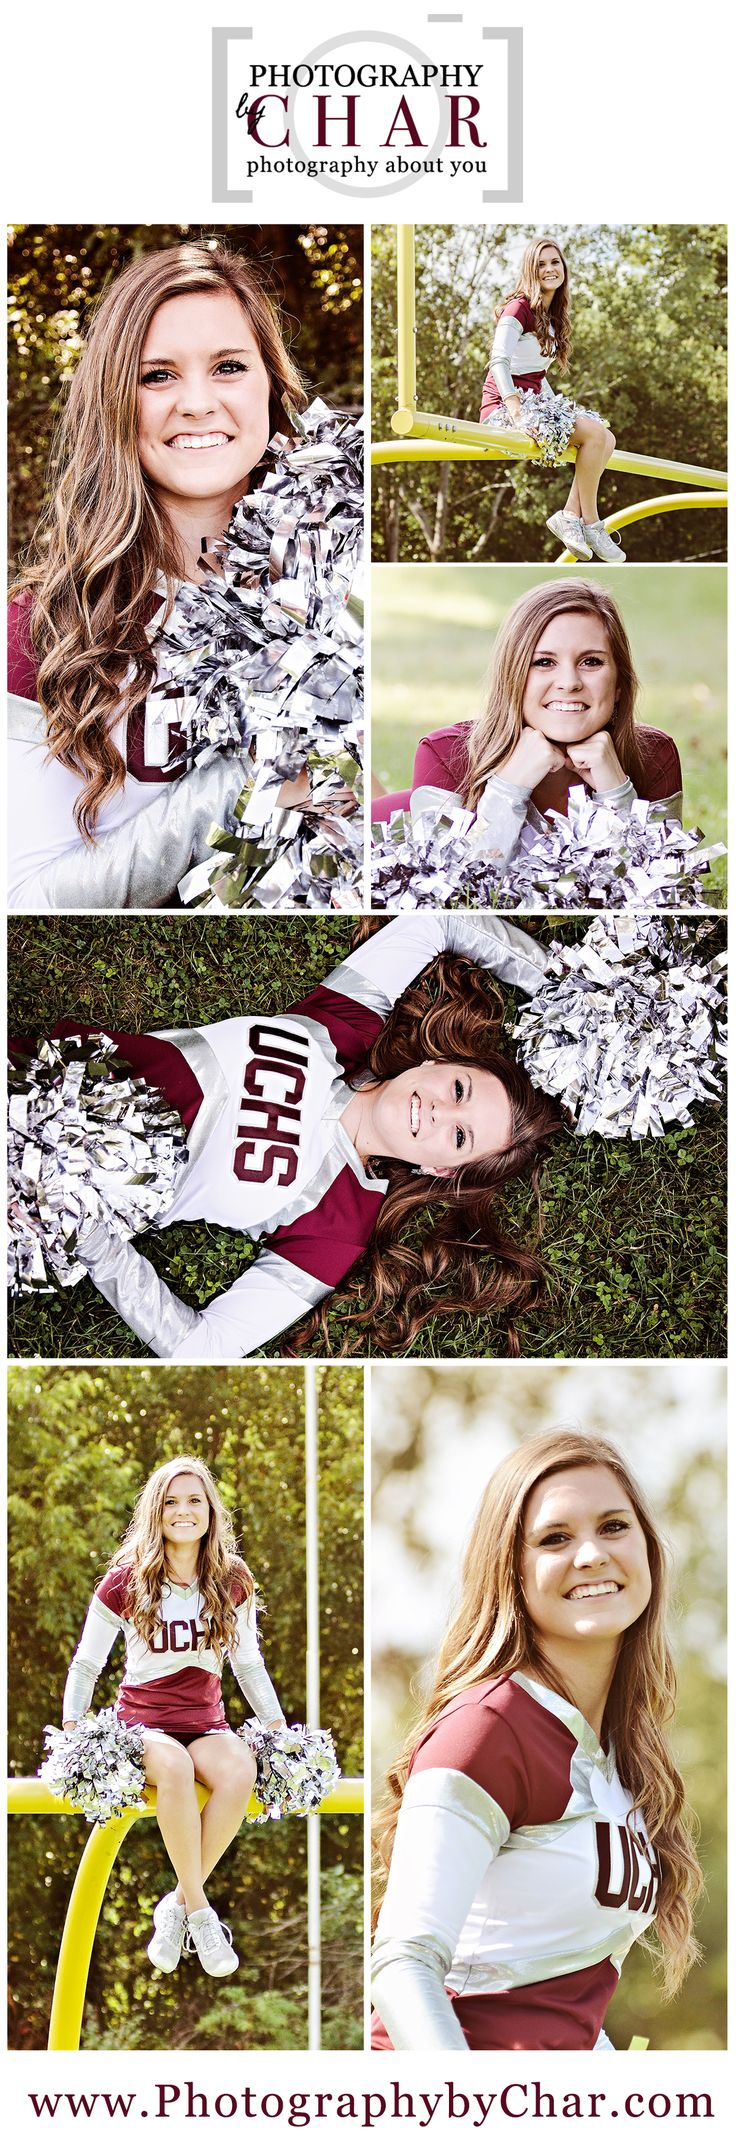 Sports Senior Portraits - Senior Portraits - Sports - High School Sports - Union City- Football - Cheerleading - Football Cheerleaders - Union City Chargers - Male - Female - Posing Ideas - Location Ideas - Props - Southern Michigan